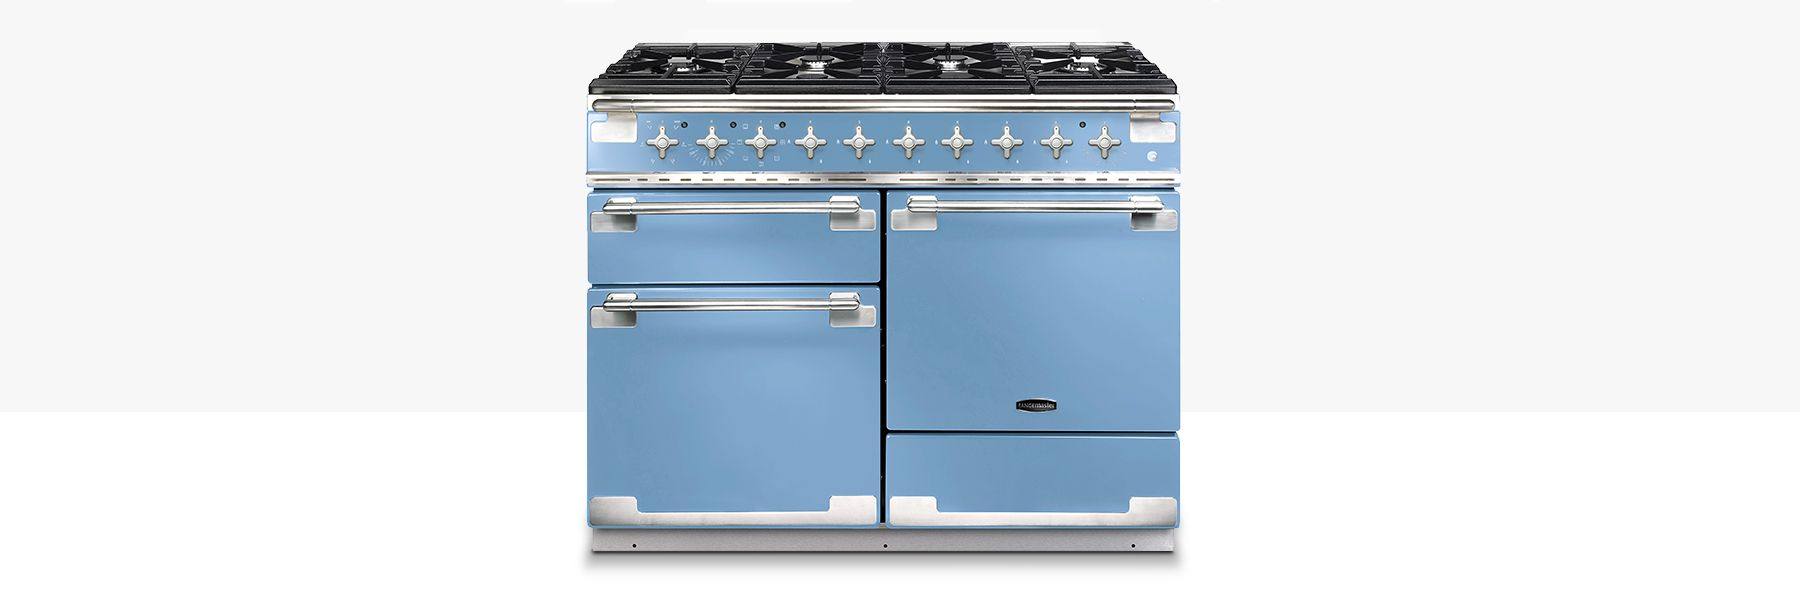 A range cooker example